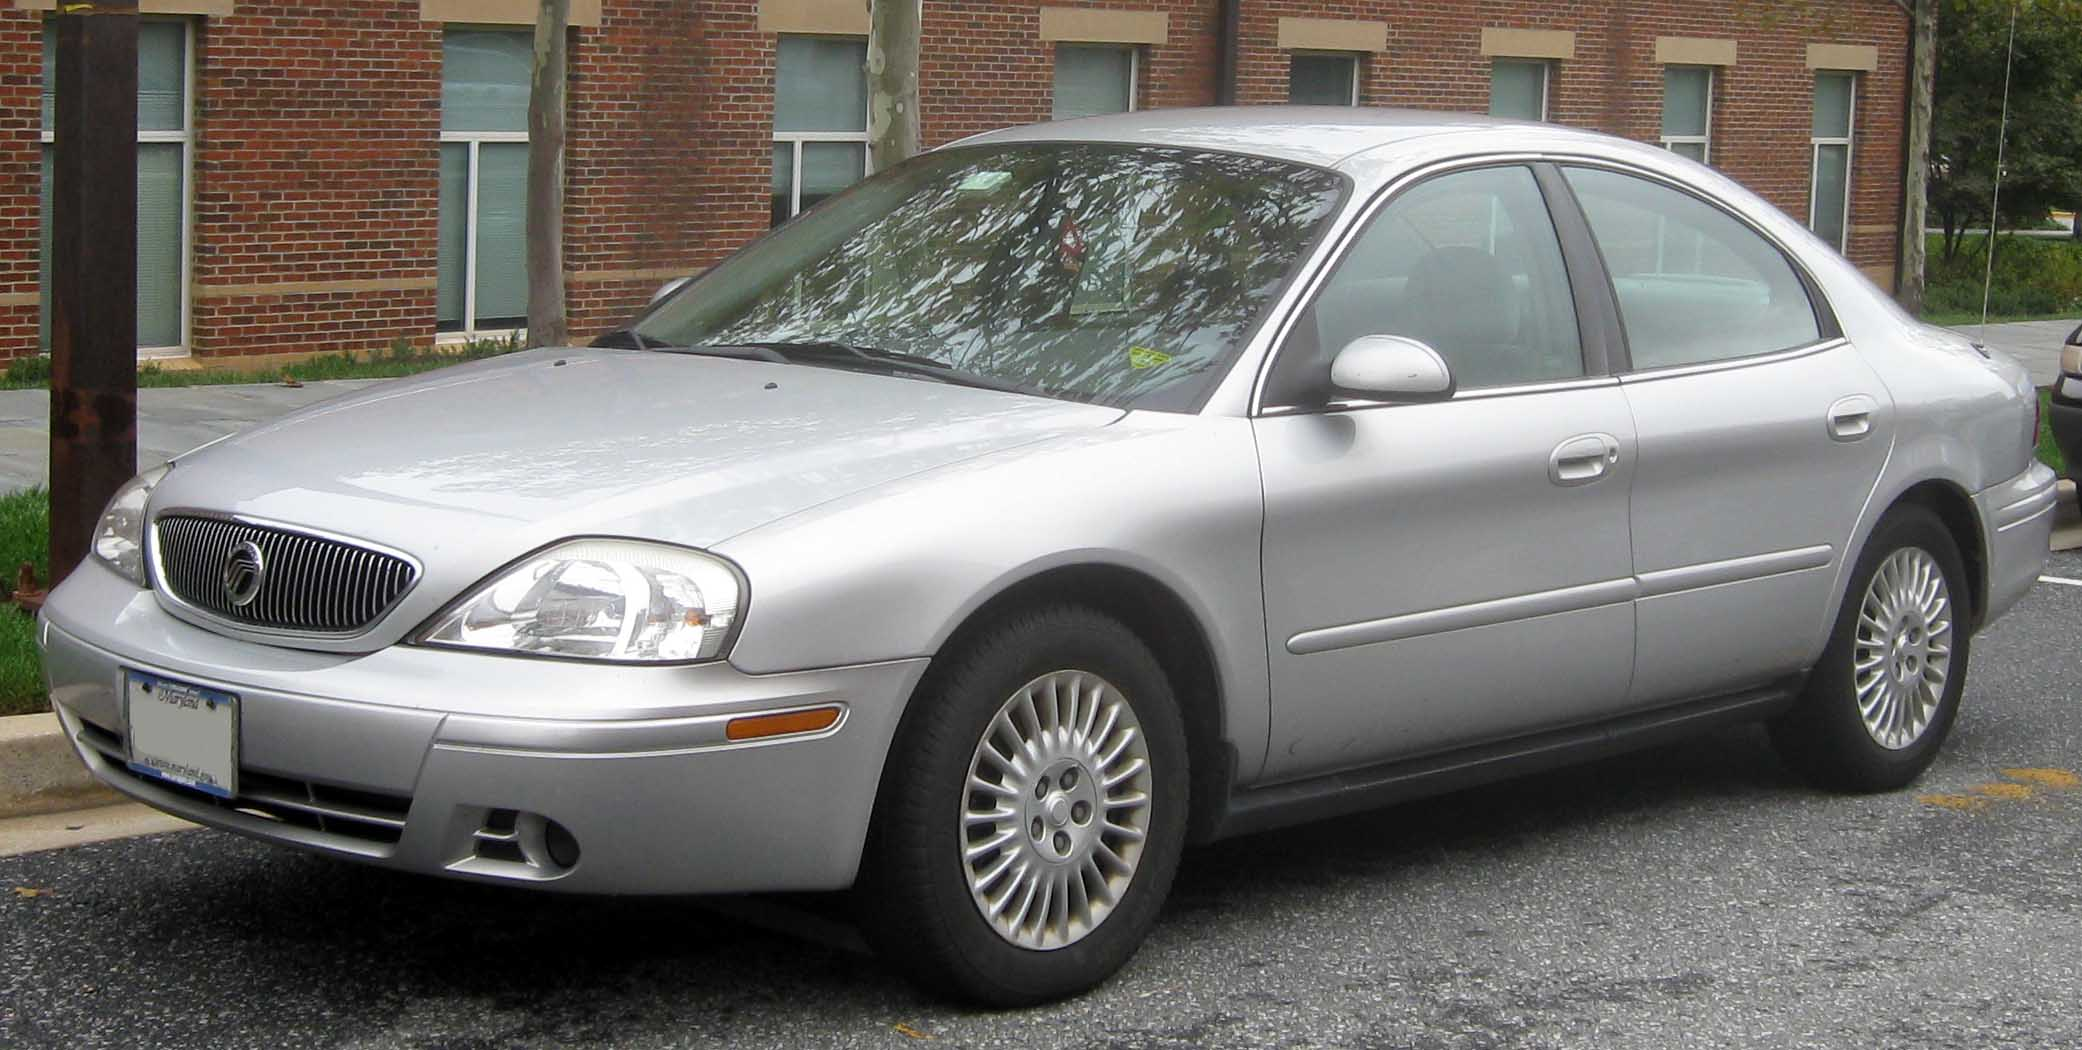 Mercury Sable #5